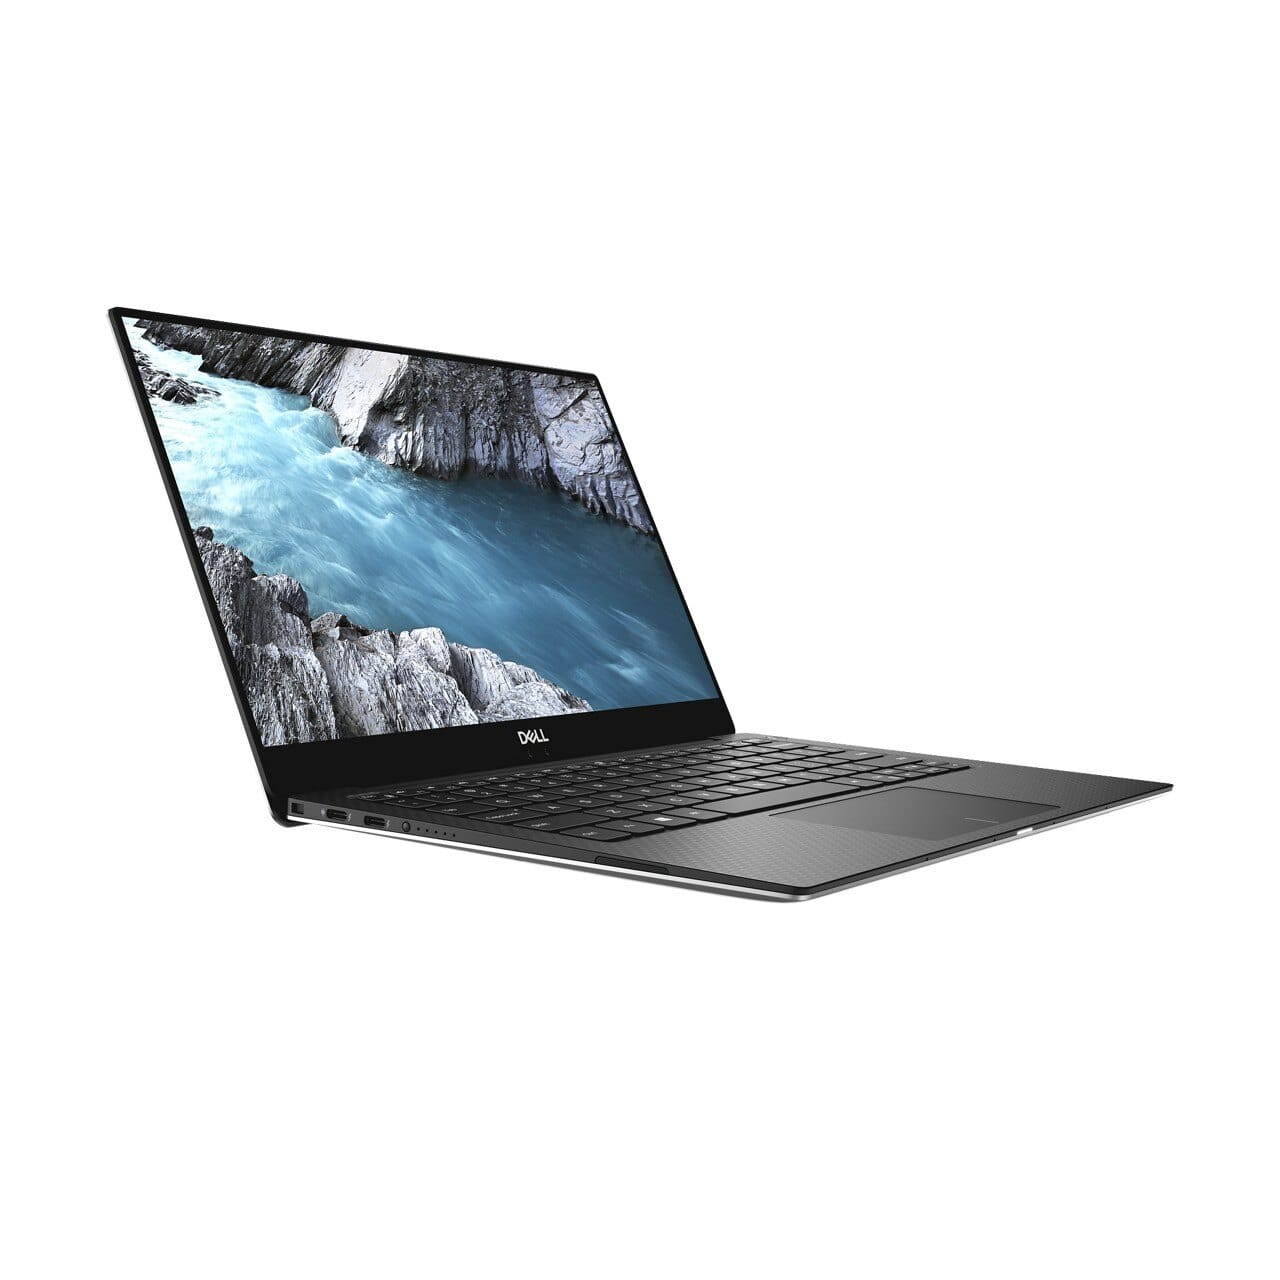 Dell XPS 13 9370 Laptop 13.3'' Touch Display Intel i7-8550U 512GB SSD 16GB RAM: $1149.99 AC + FS + $148.39 back in Rakuten Super Points (Other Models Available)